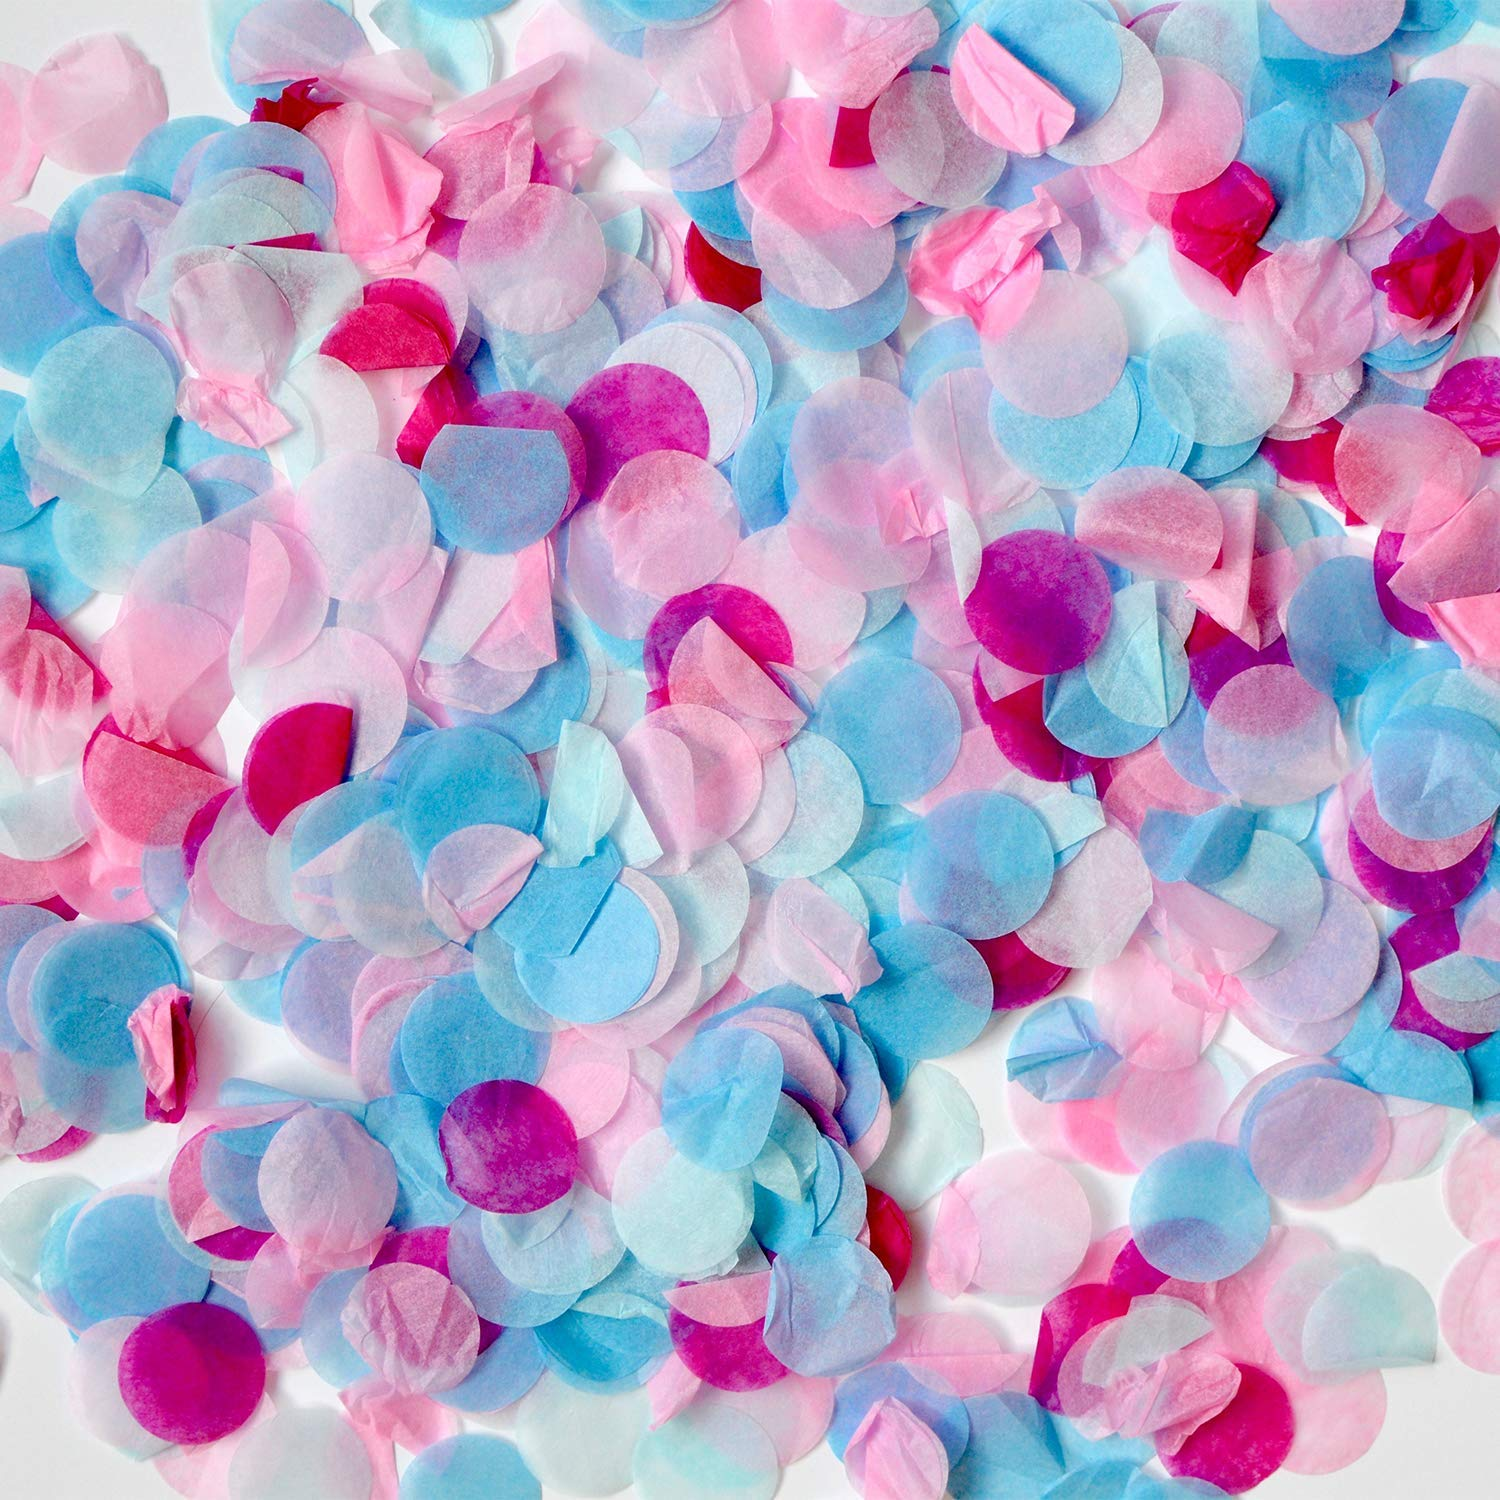 Easy Fill Perfect for Baby Showers Announcements Party All Day Supplies No Mess Surprises Vibrant Confetti 36 inches Large Gender Reveal Black Balloon with Pink and Blue Confetti Party Set with 30 Pcs Photo Props